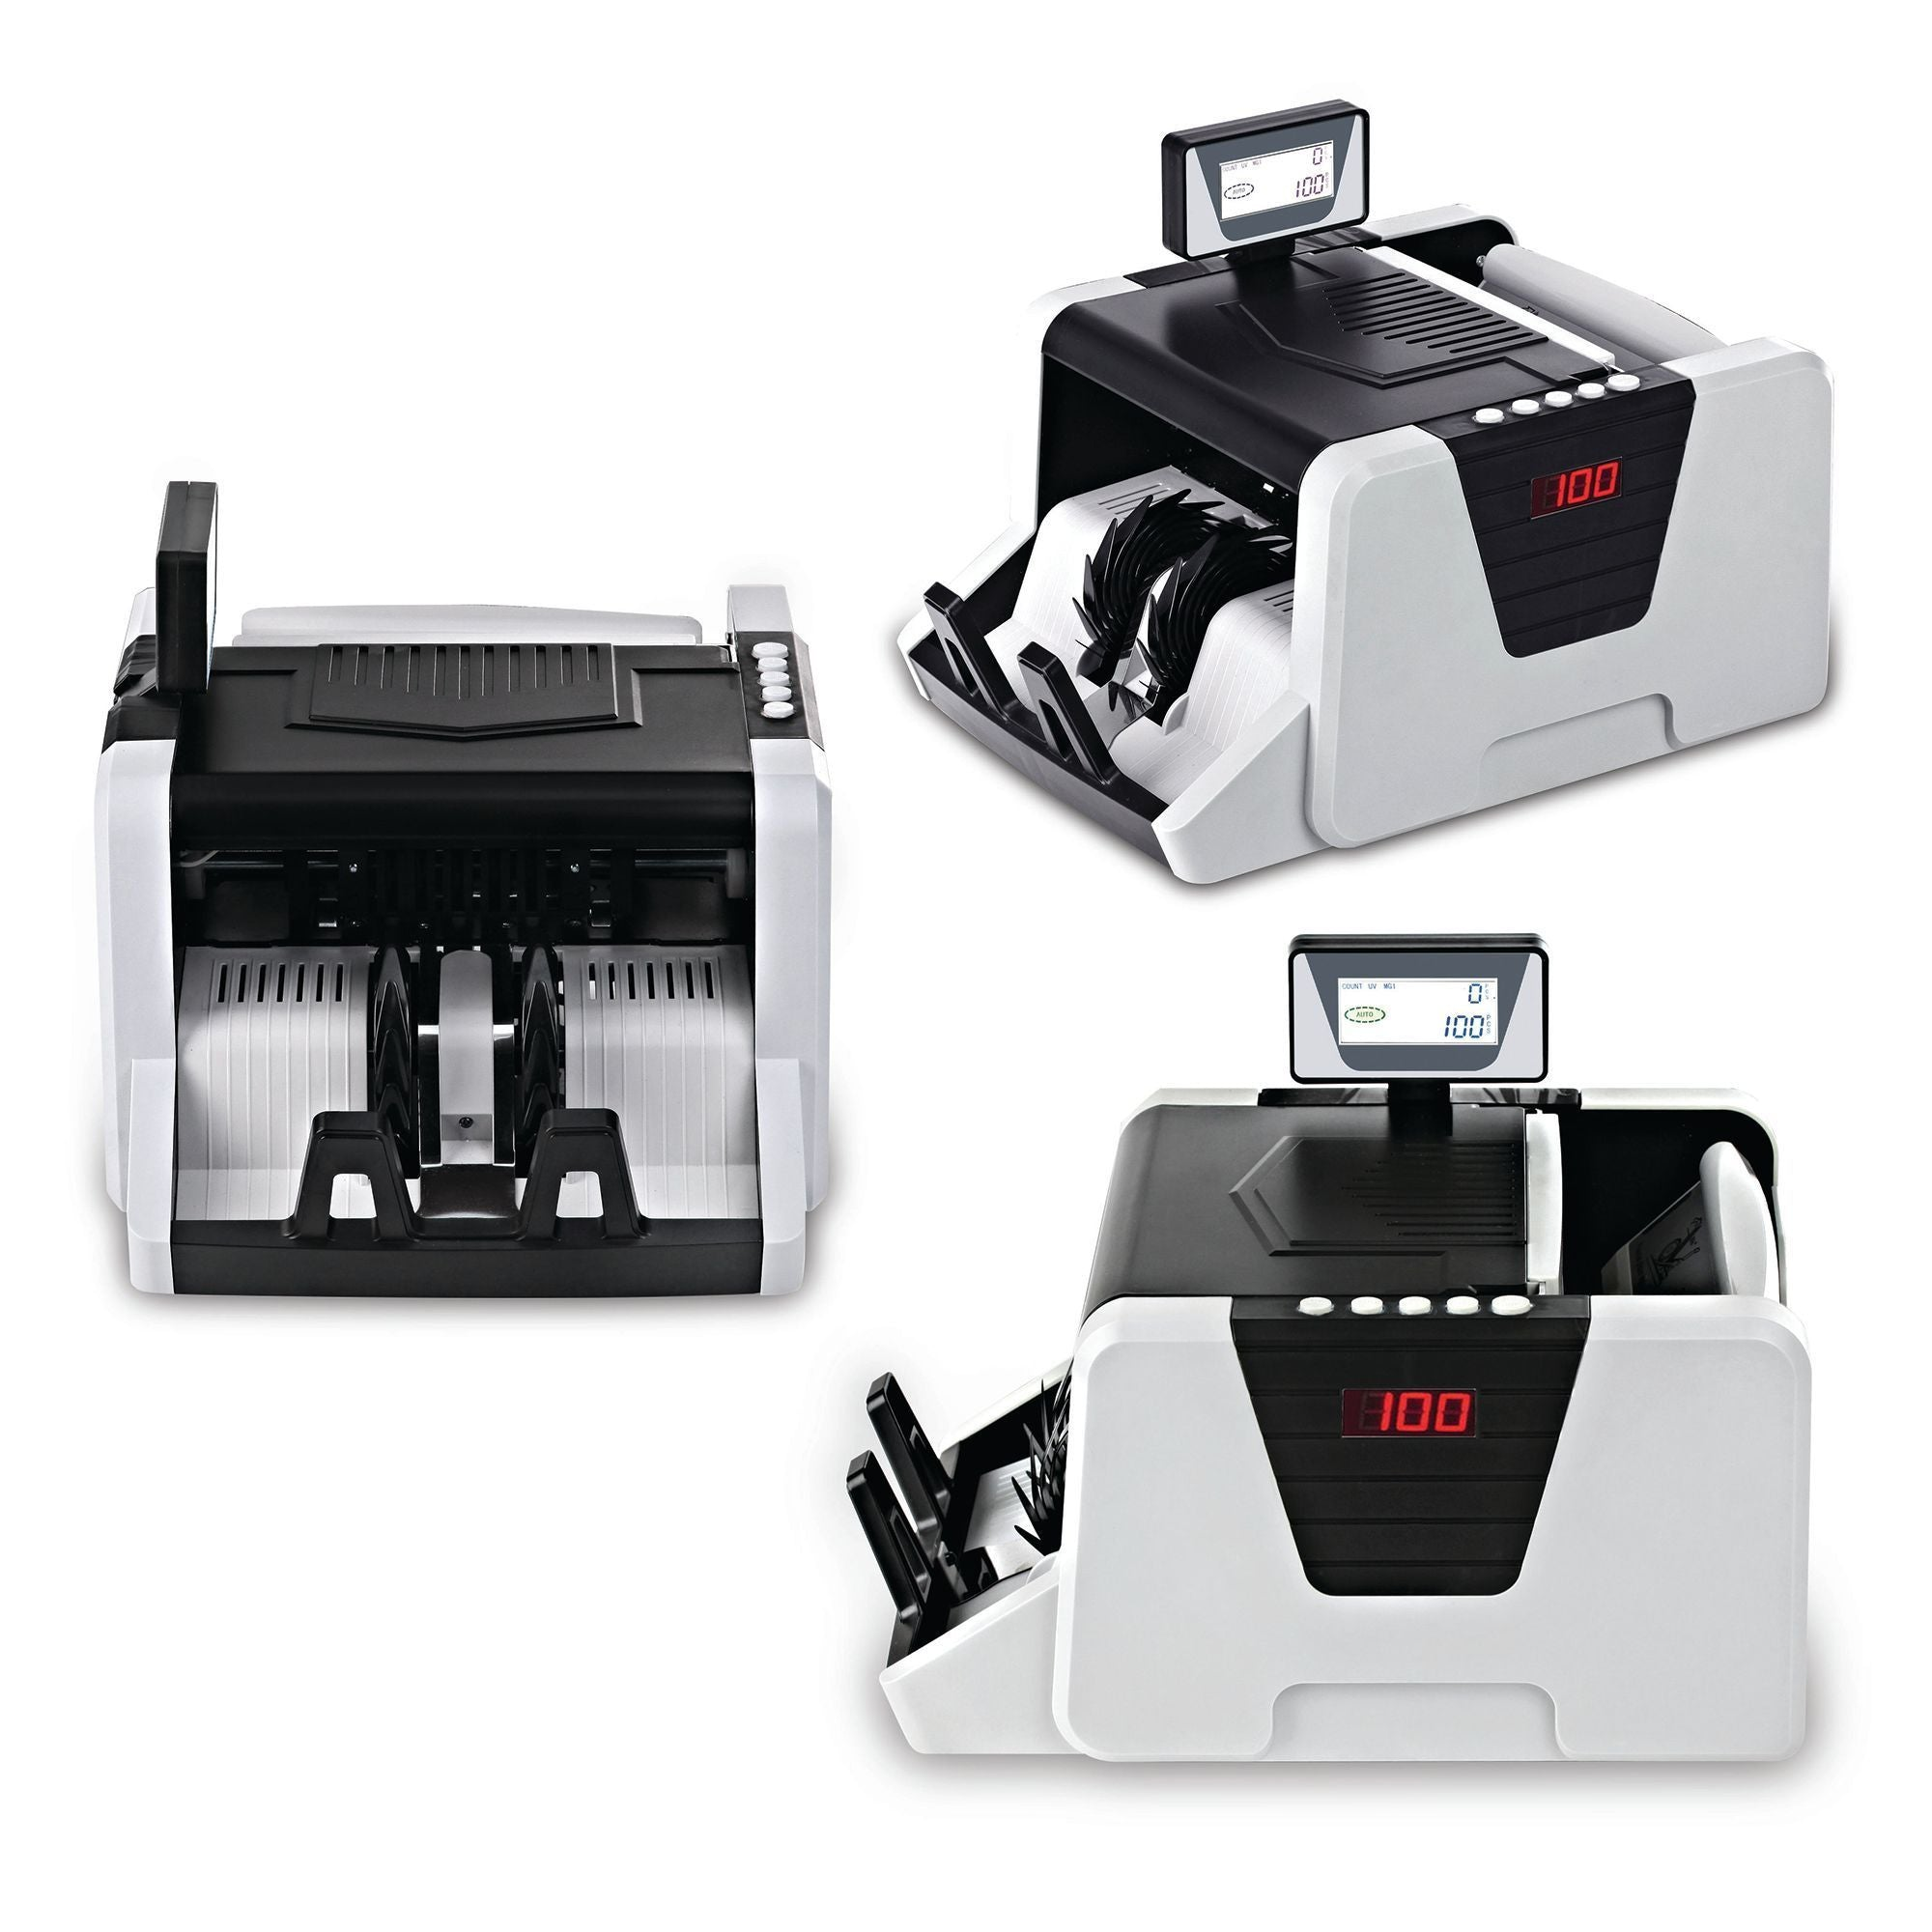 Pyle Premium Automatic Bill Counting Machine, Counterfeit Detection, 100 Pieces Per Min, (PRMC550)